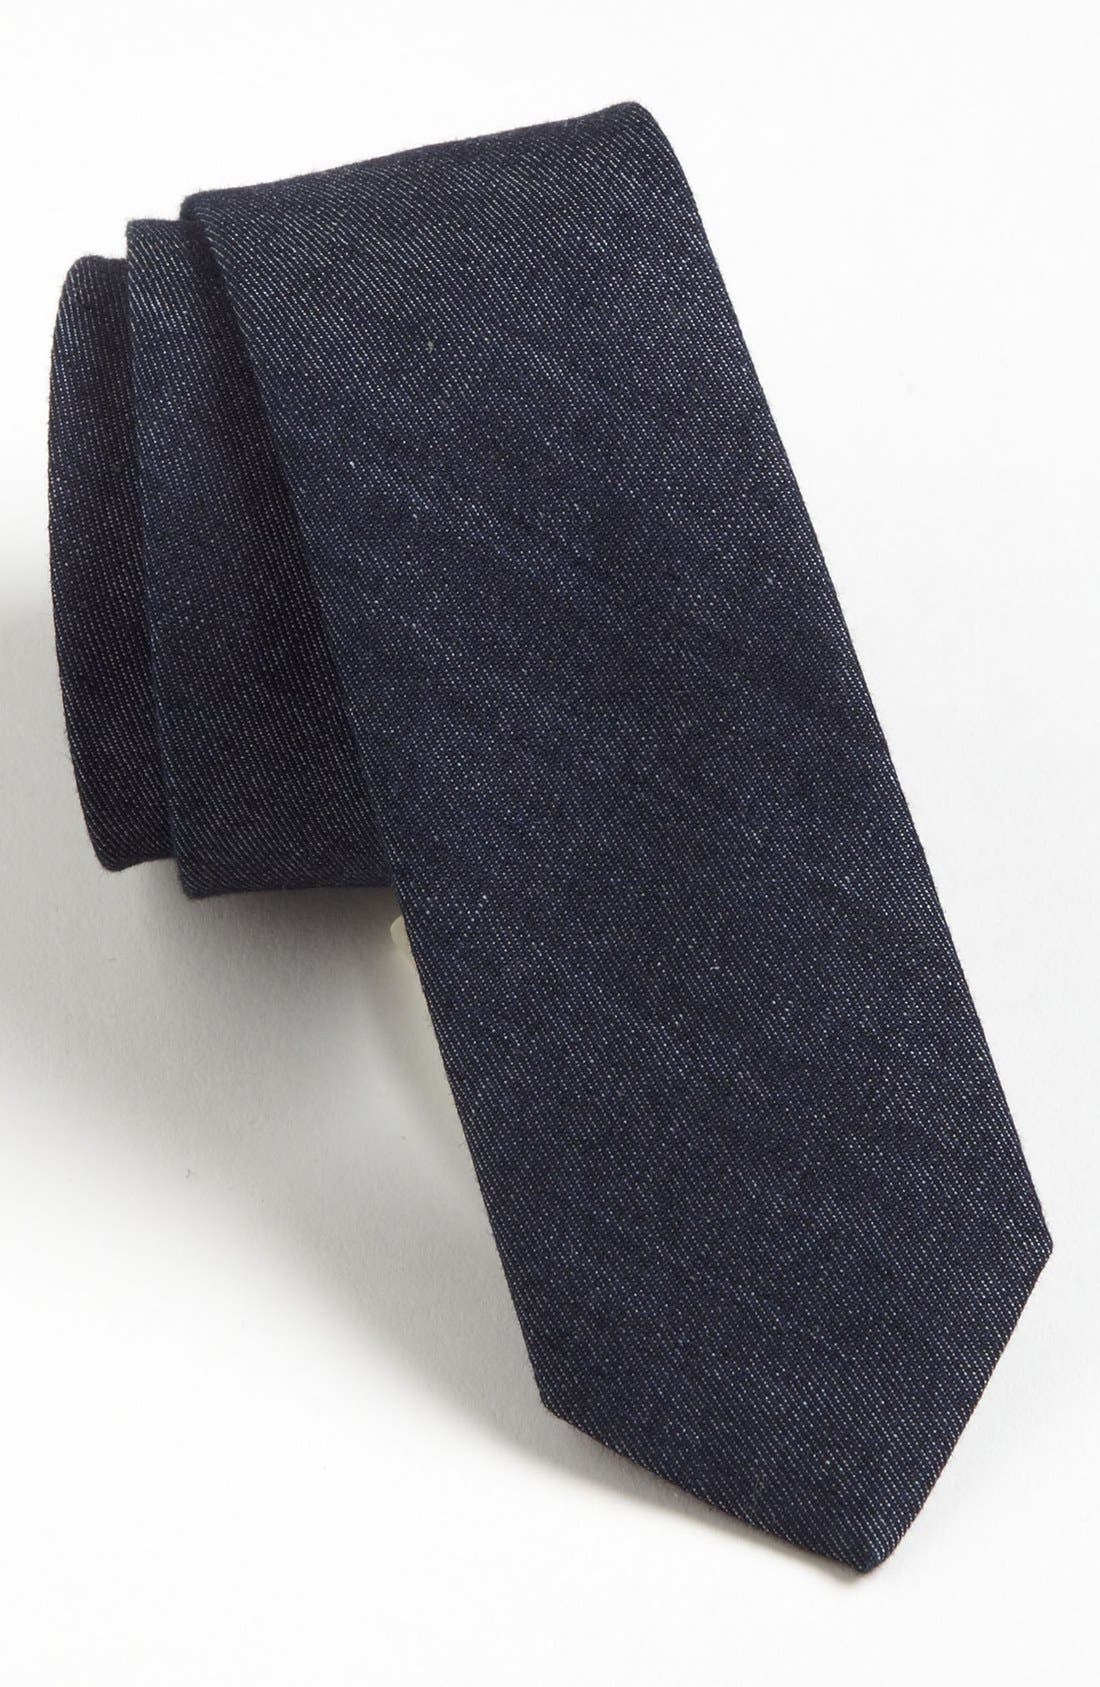 Alternate Image 1 Selected - Topman Woven Cotton Denim Tie